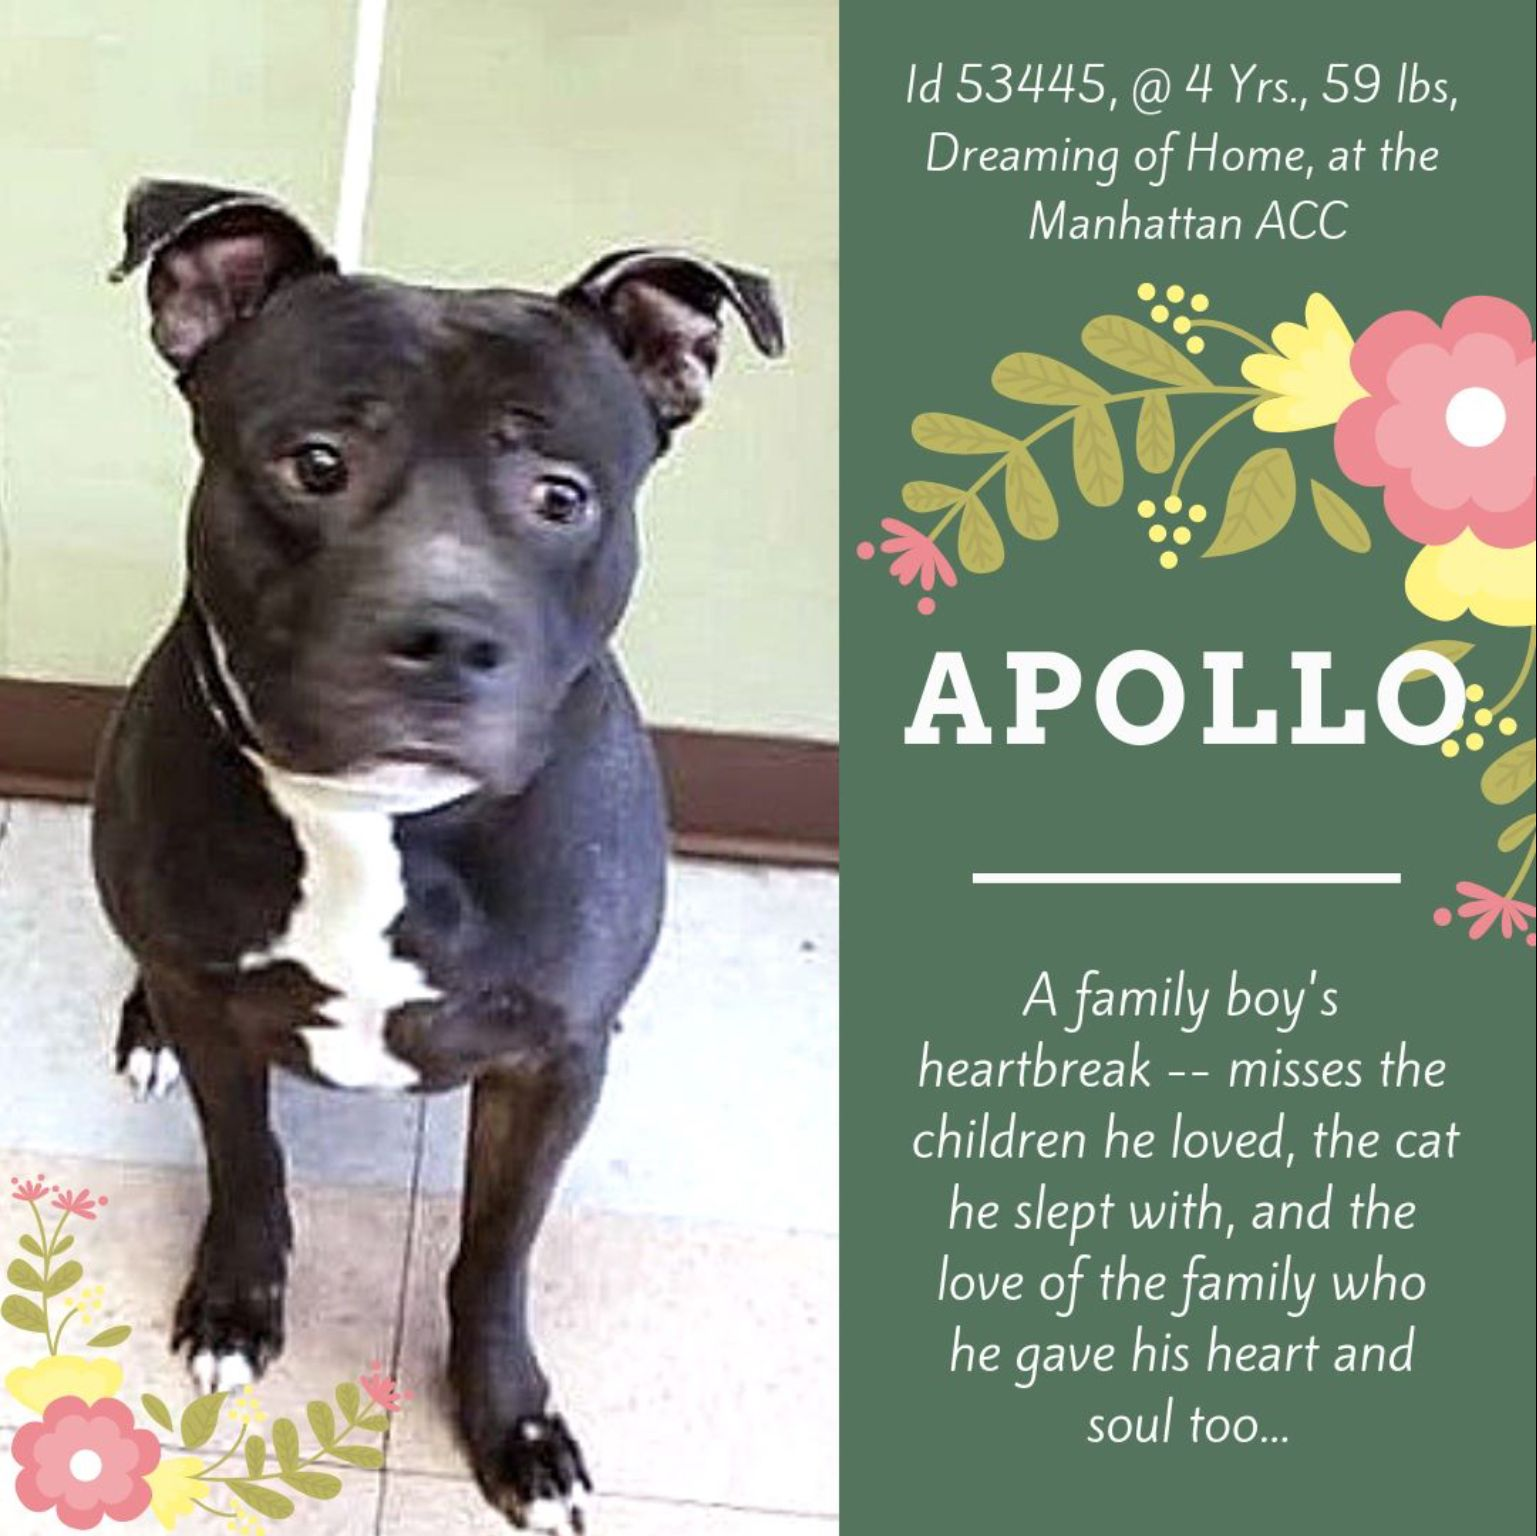 APOLLO TO DIE 02/02/19 Animal projects, Adoption